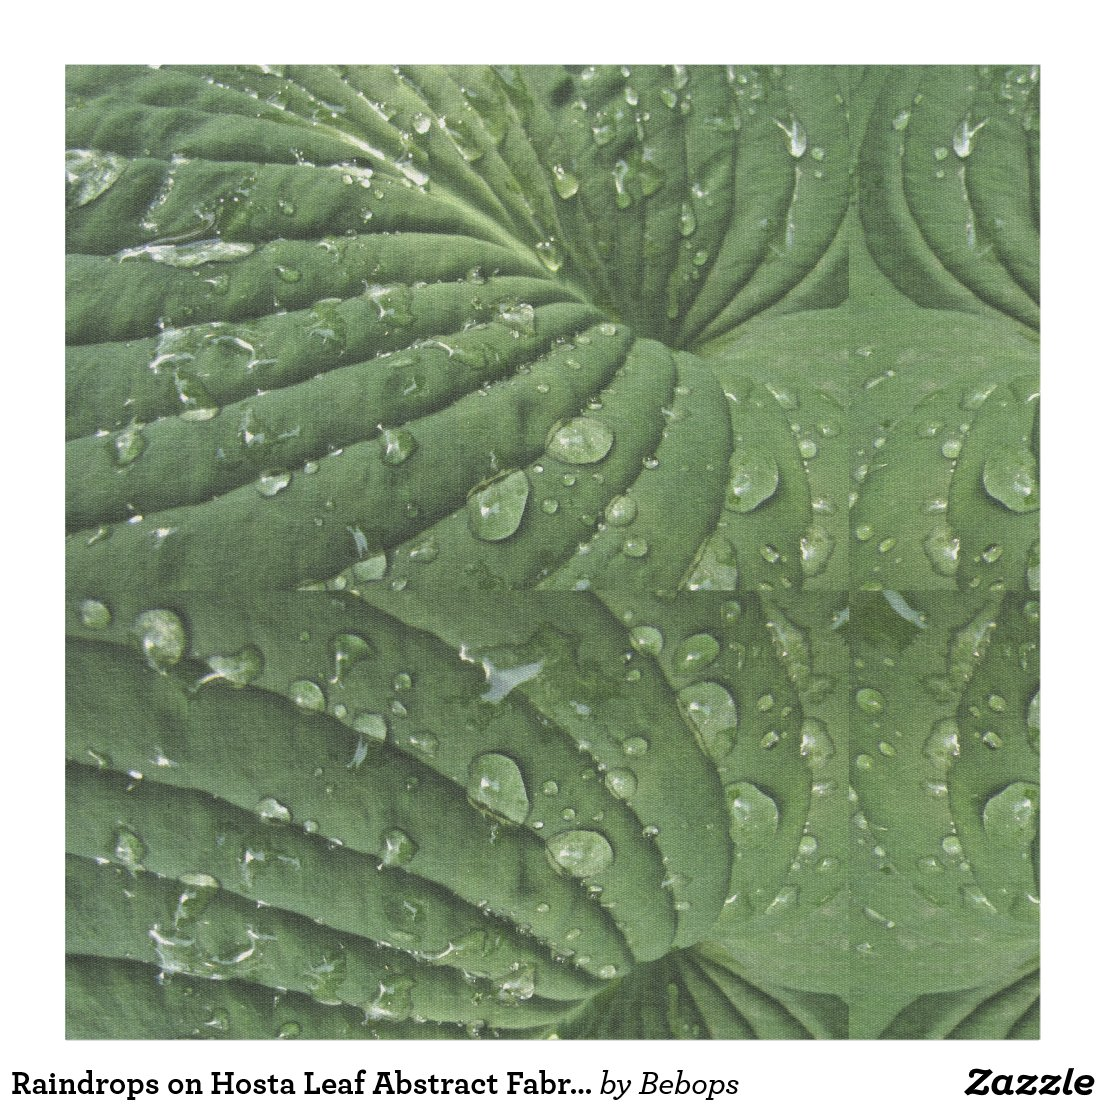 Raindrops on Hosta Leaf Abstract Fabric